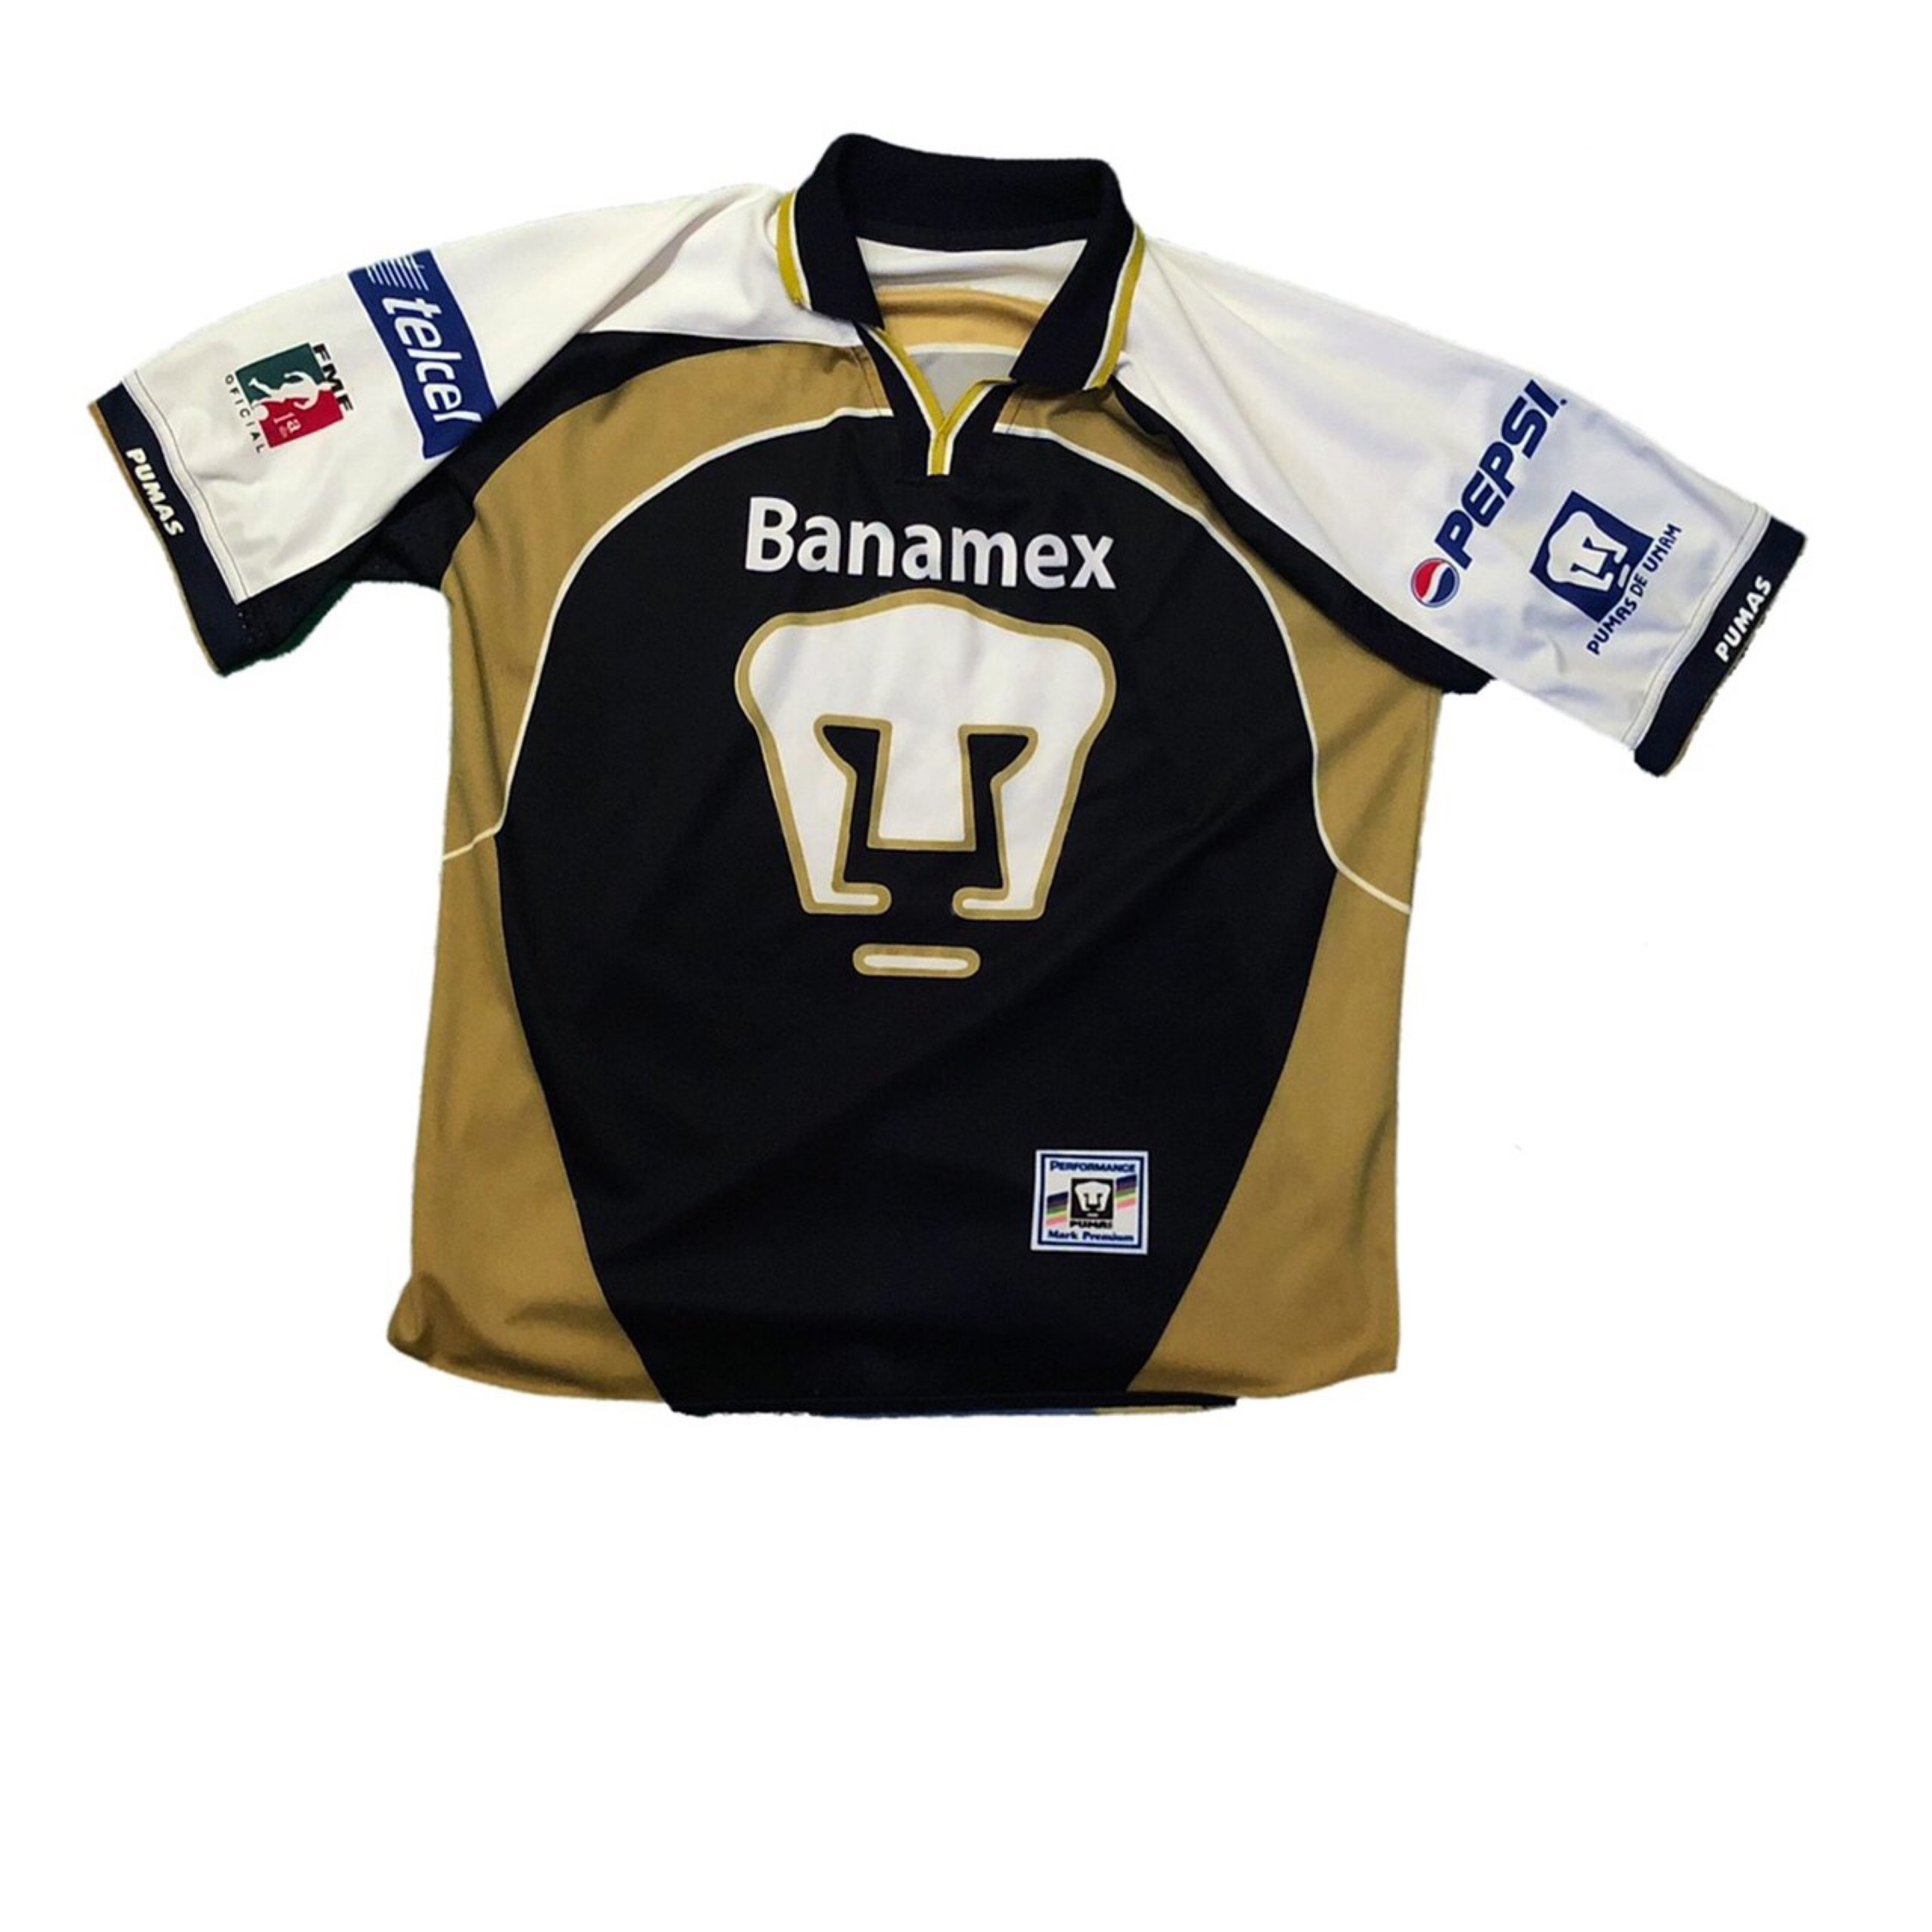 free shipping 4a248 64823 Vintage Banamex Pumas Soccer Jersey